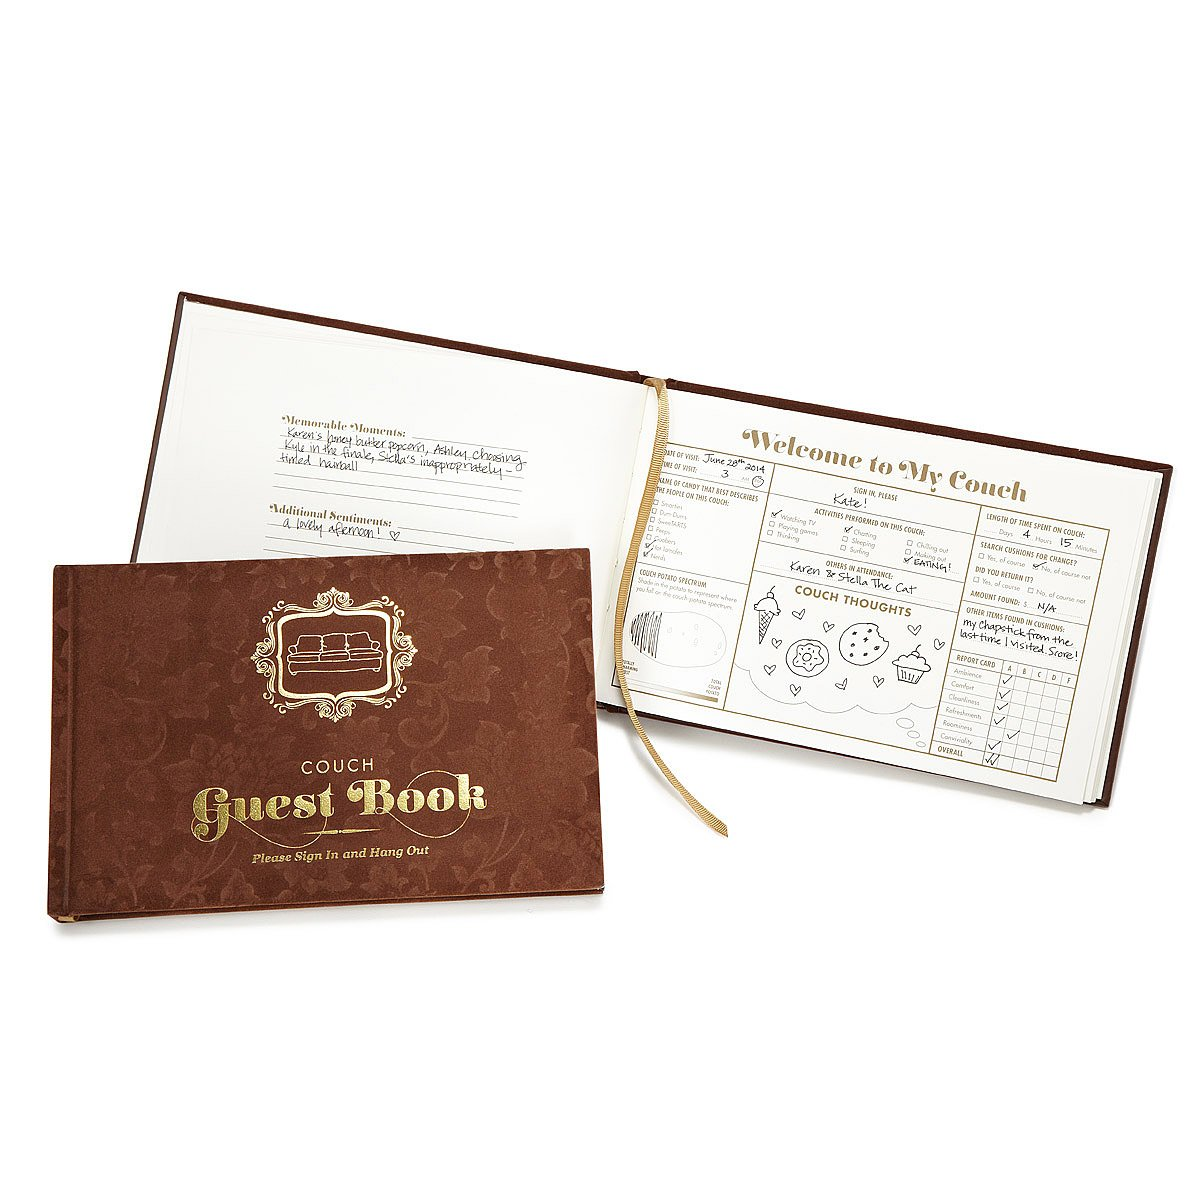 Bathroom Guest Book The Bathroom Guestbook Funny Book Potty Humor Uncommongoods